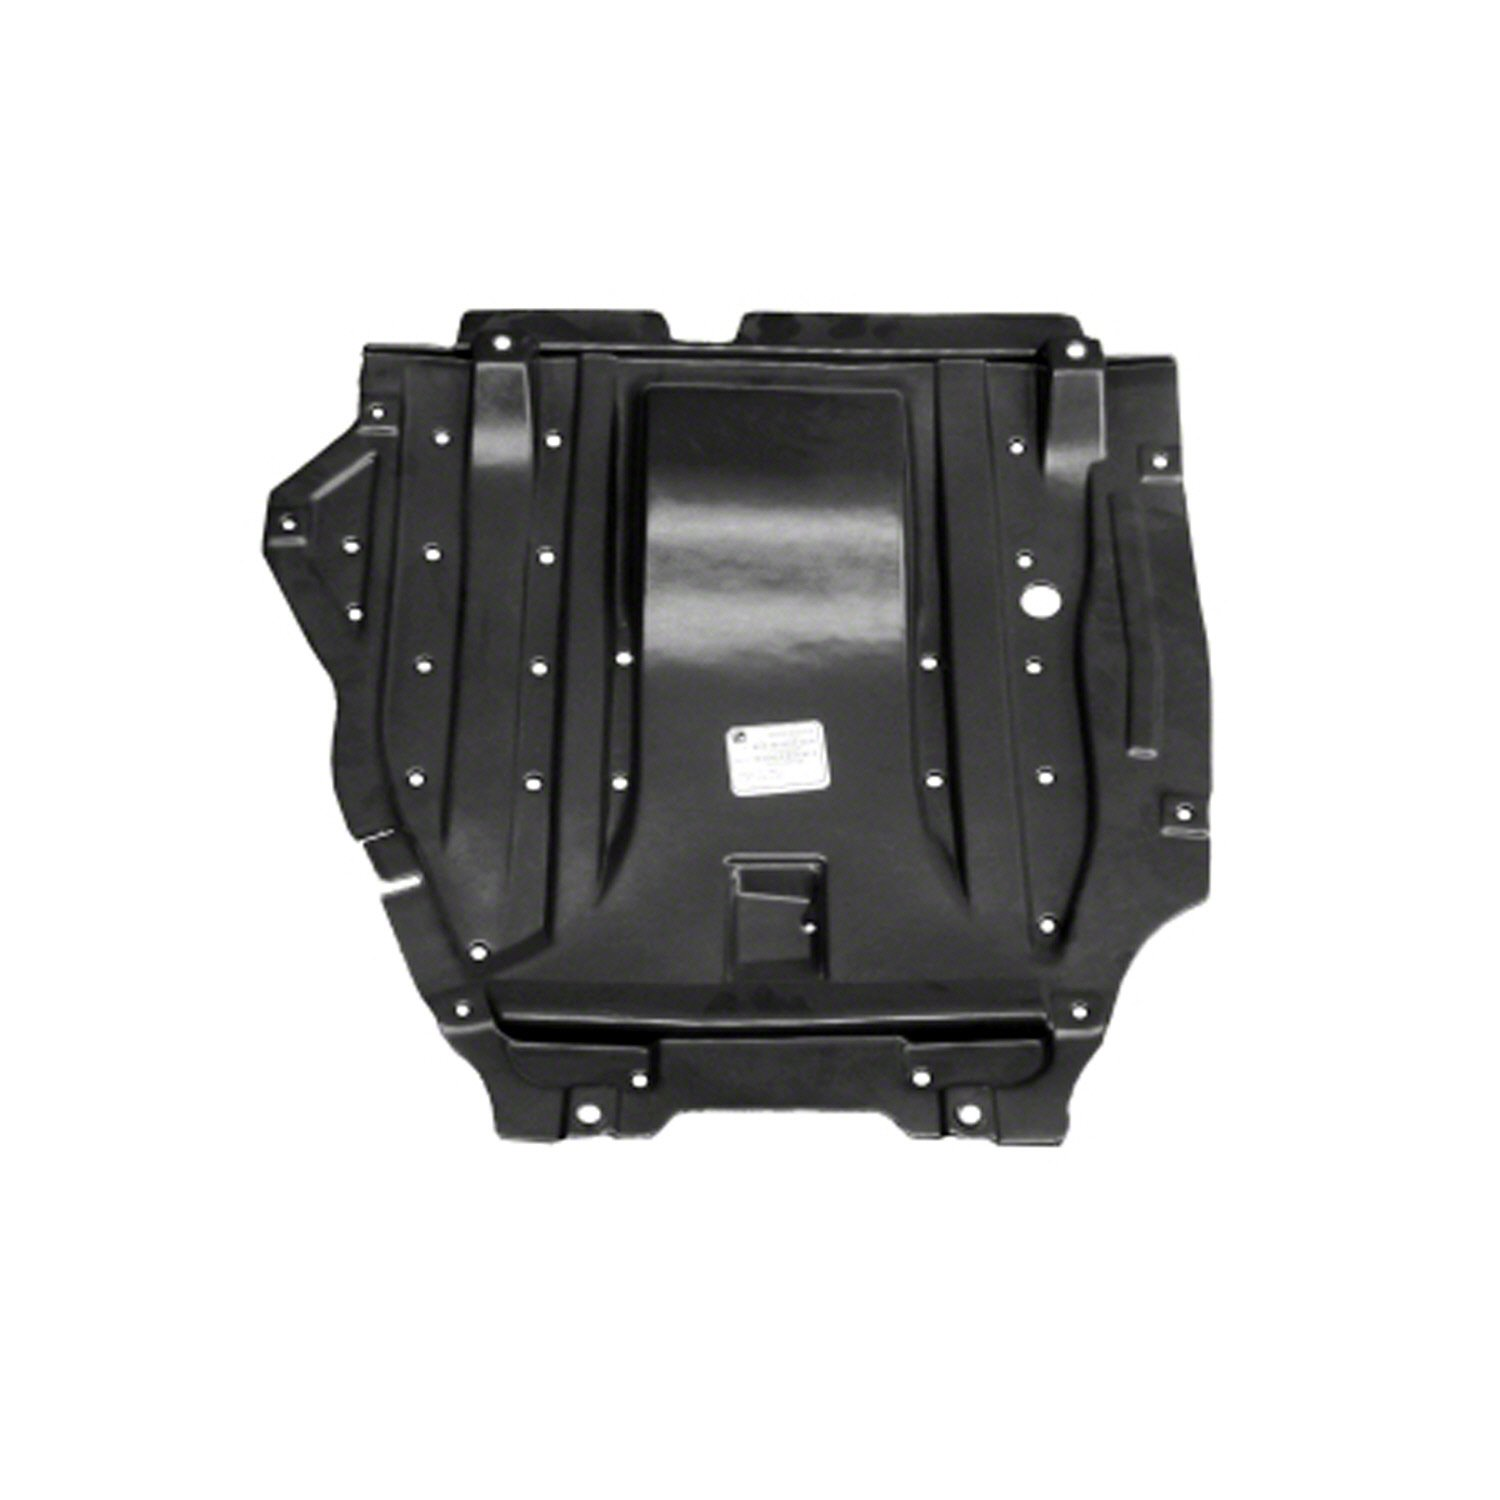 Insight CPP HO1228128 Engine Cover for Honda CR-Z